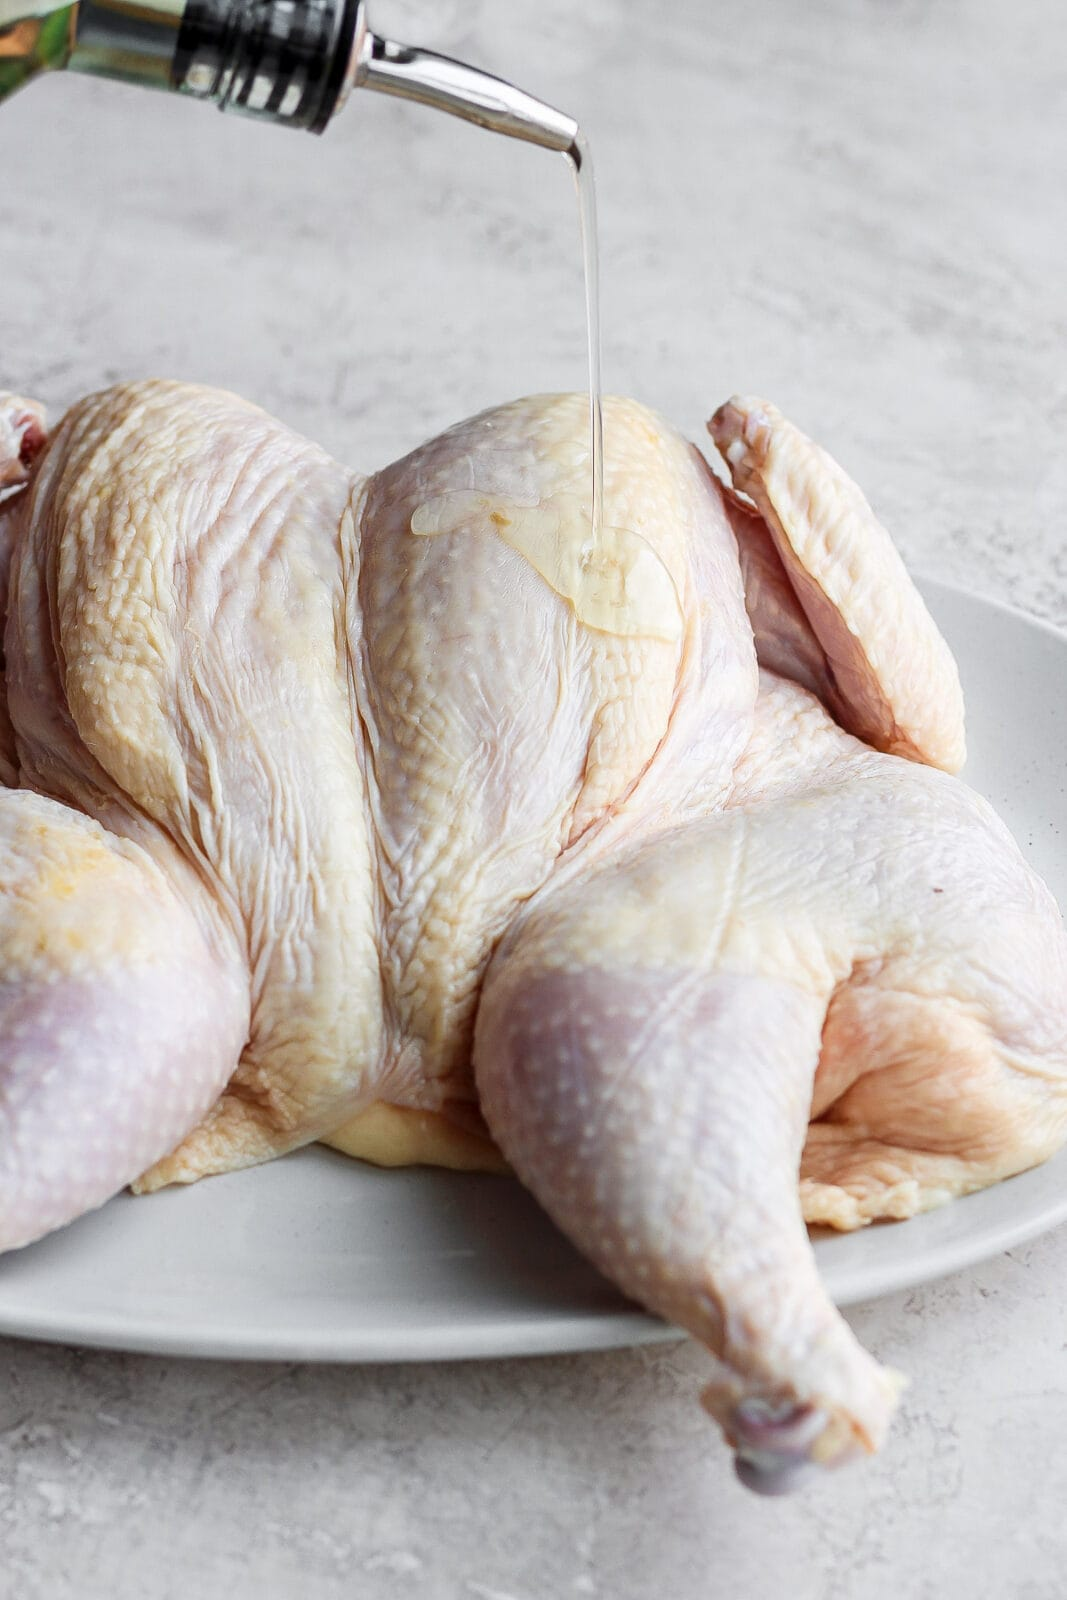 Pouring oil onto a spatchcocked chicken.